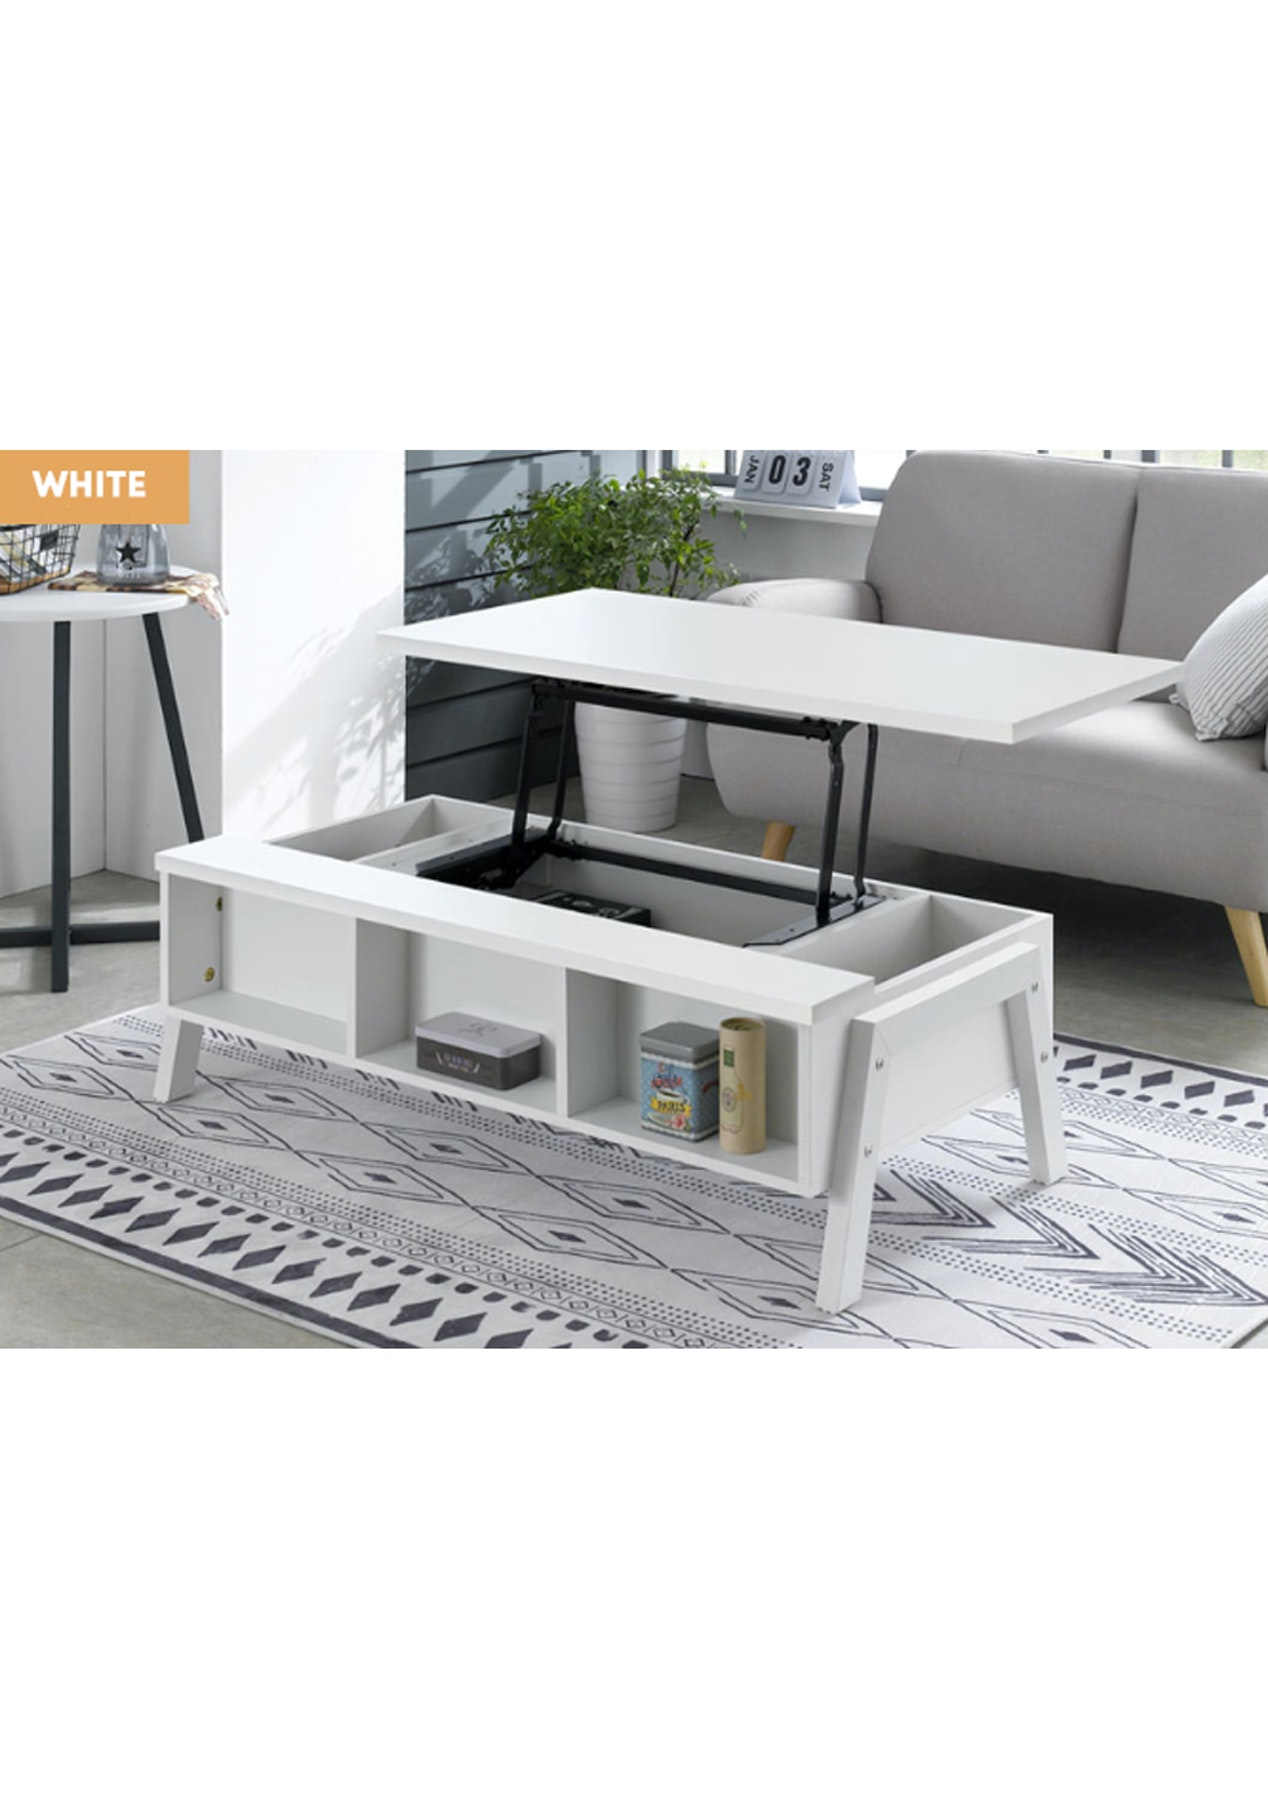 White Lift Up Coffee Table.Tod Lift Up Coffee Table